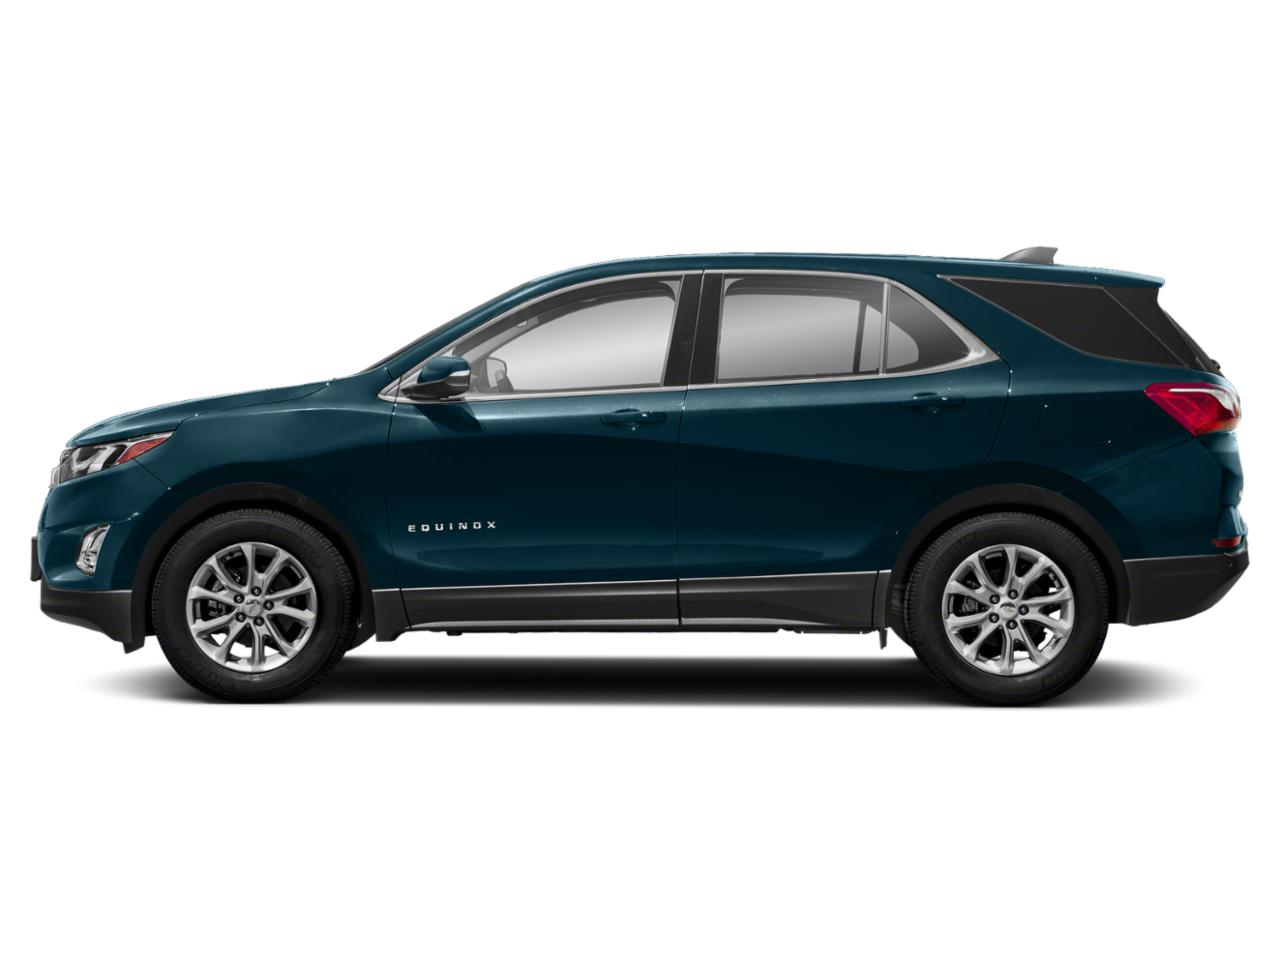 Used 2019 Chevrolet Equinox LT with VIN 2GNAXUEV8K6163394 for sale in Red Lake Falls, Minnesota